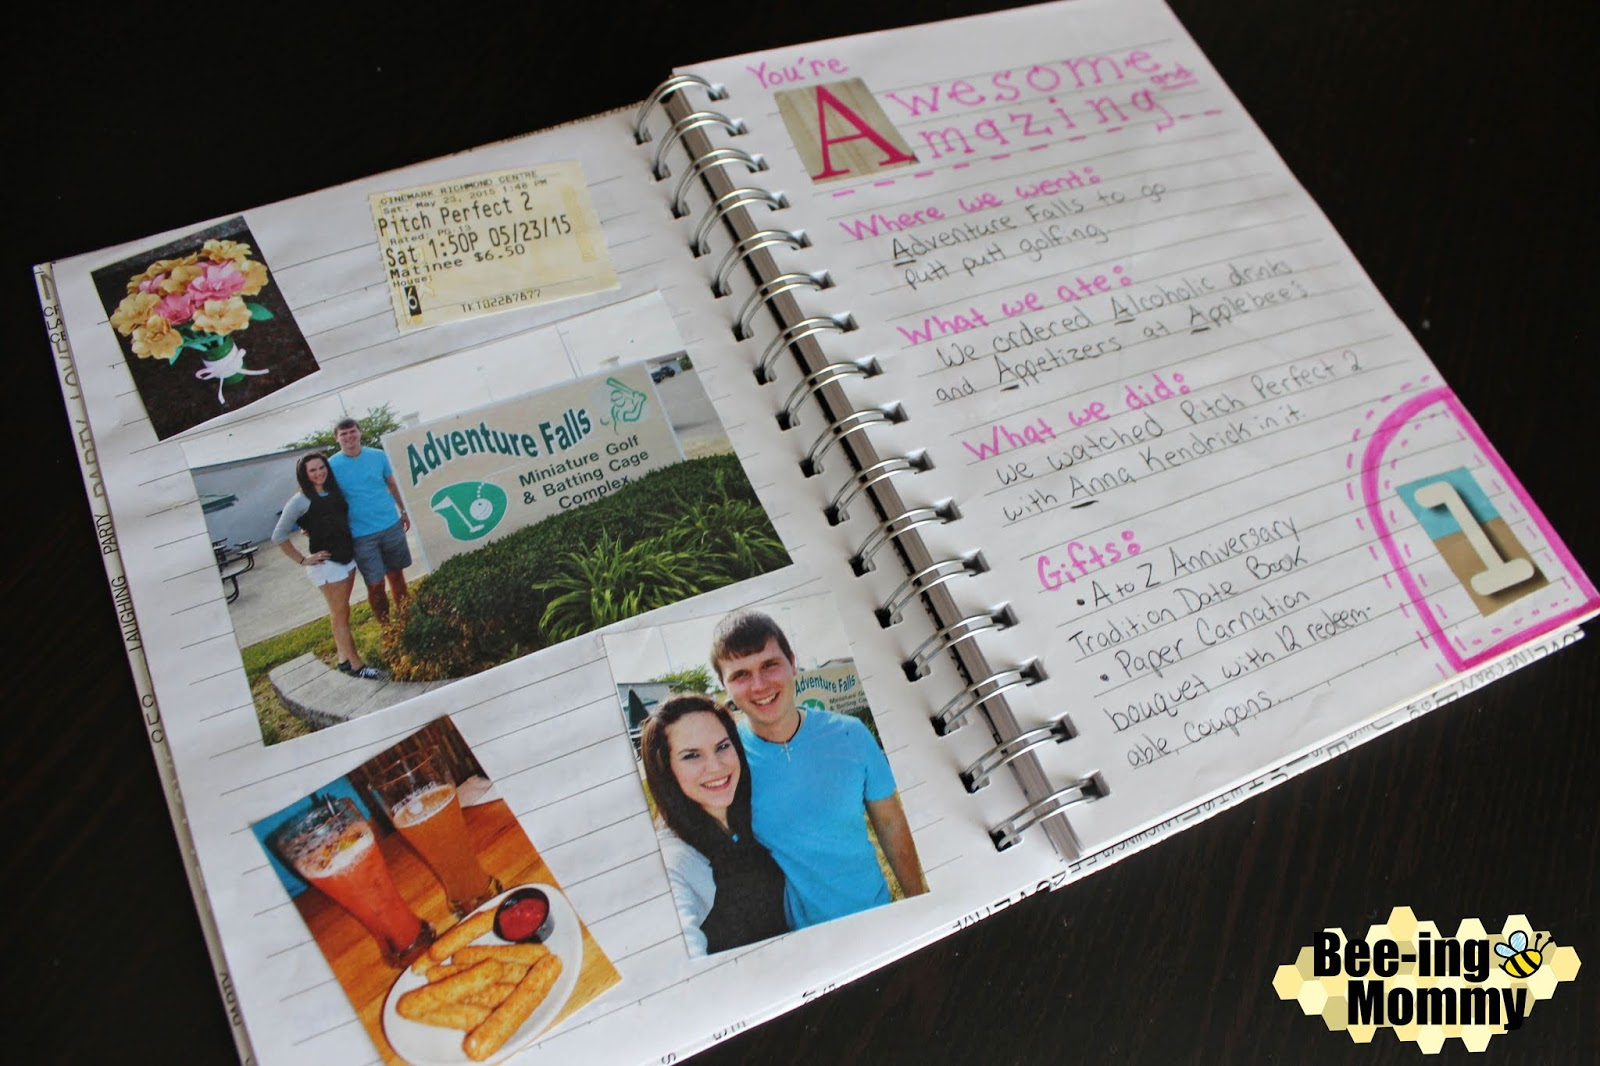 A to Z Wedding Anniversary Date Book